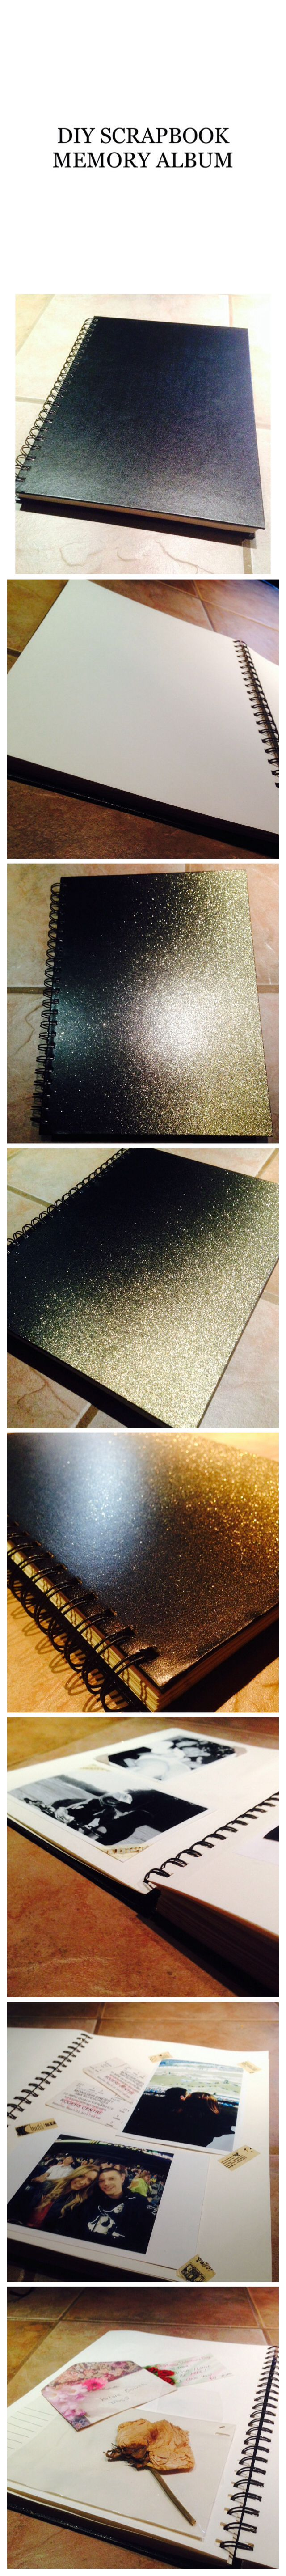 Diy scrapbook / photo memory album. Cost about $10.00 to make ! Super cheap and easy! I just wanted a nice simple memory album that had lots of pages I could add to - without spending a fortune! Picked up a sketchbook from dollaramma for $3 and sprayed gold glitter spray paint in an ombré style.  I used tickets and notes to add a personal touch.  Love how this turned out - definitely making more !